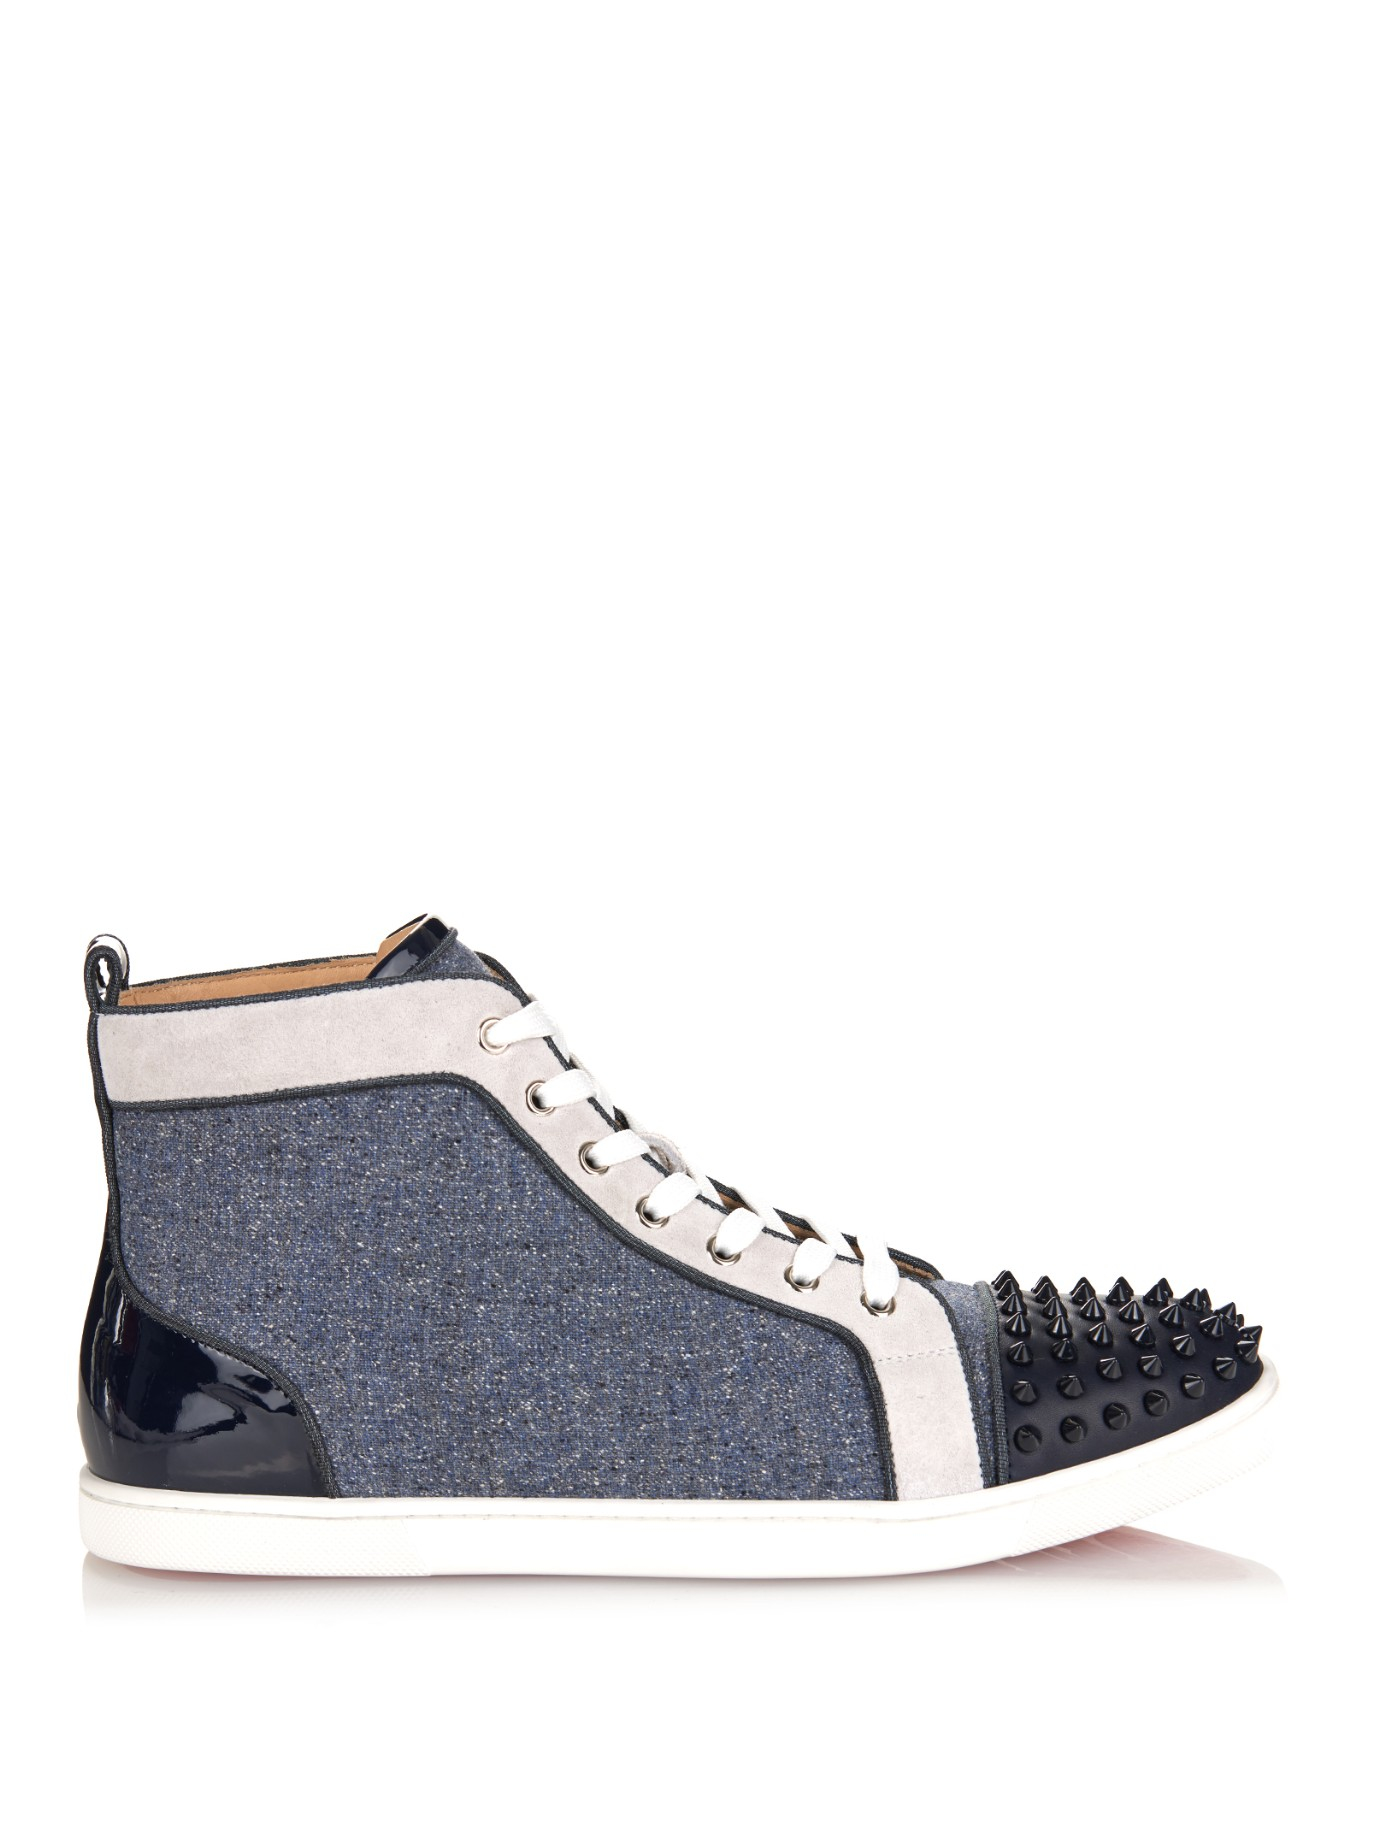 4712158dcf64 Christian Louboutin Bip Bip Orlato Spiked High-Top Sneakers in Blue ...